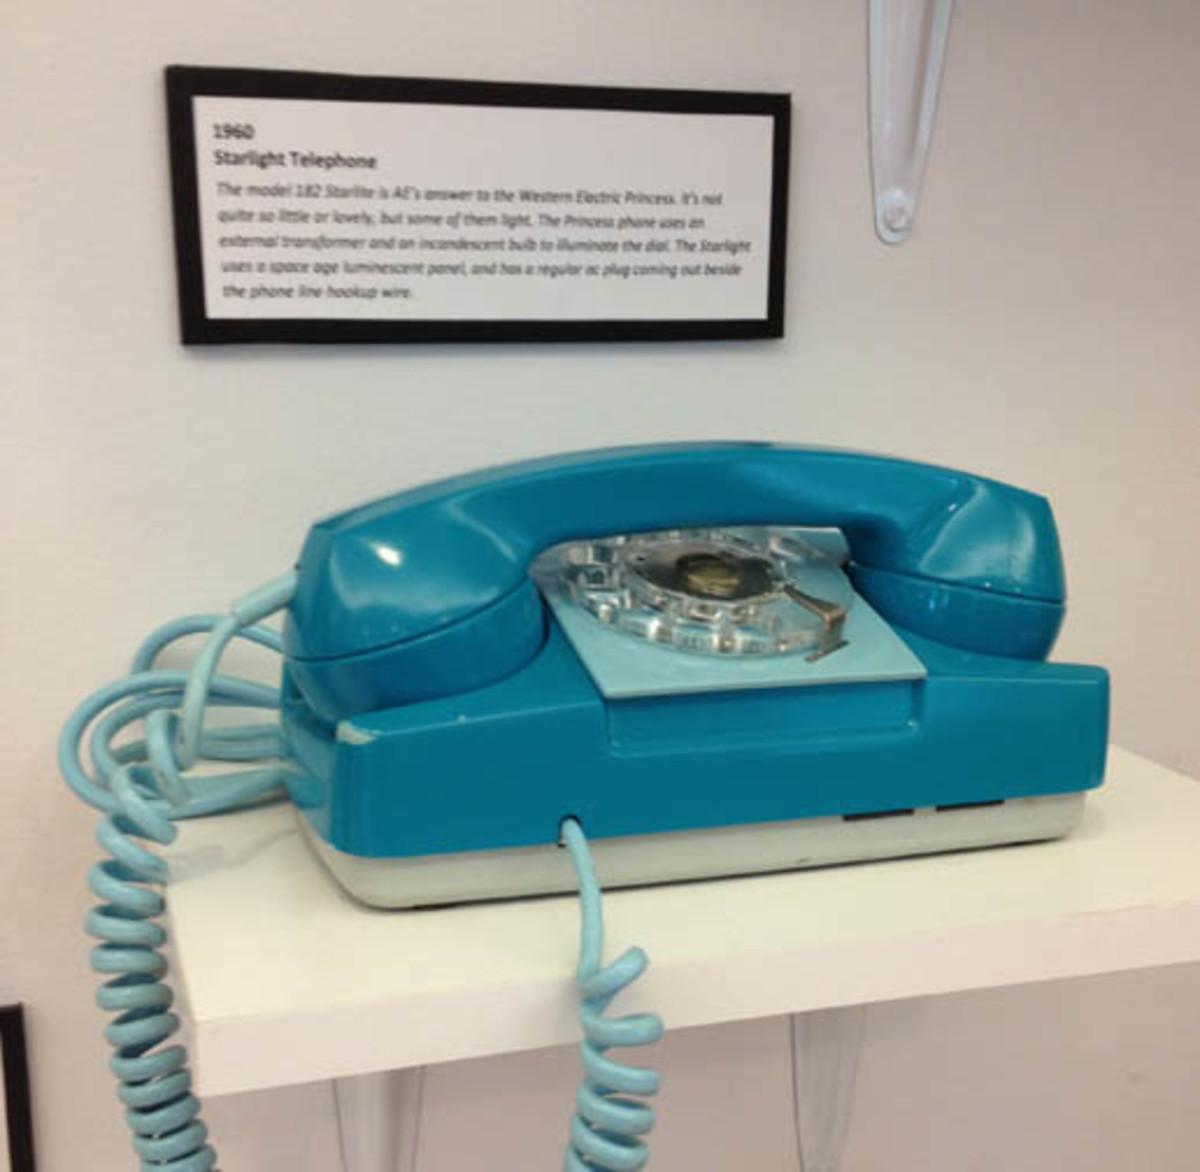 1960 Starlight phone was a popular model. The Princess phone was another popular phone of its day.